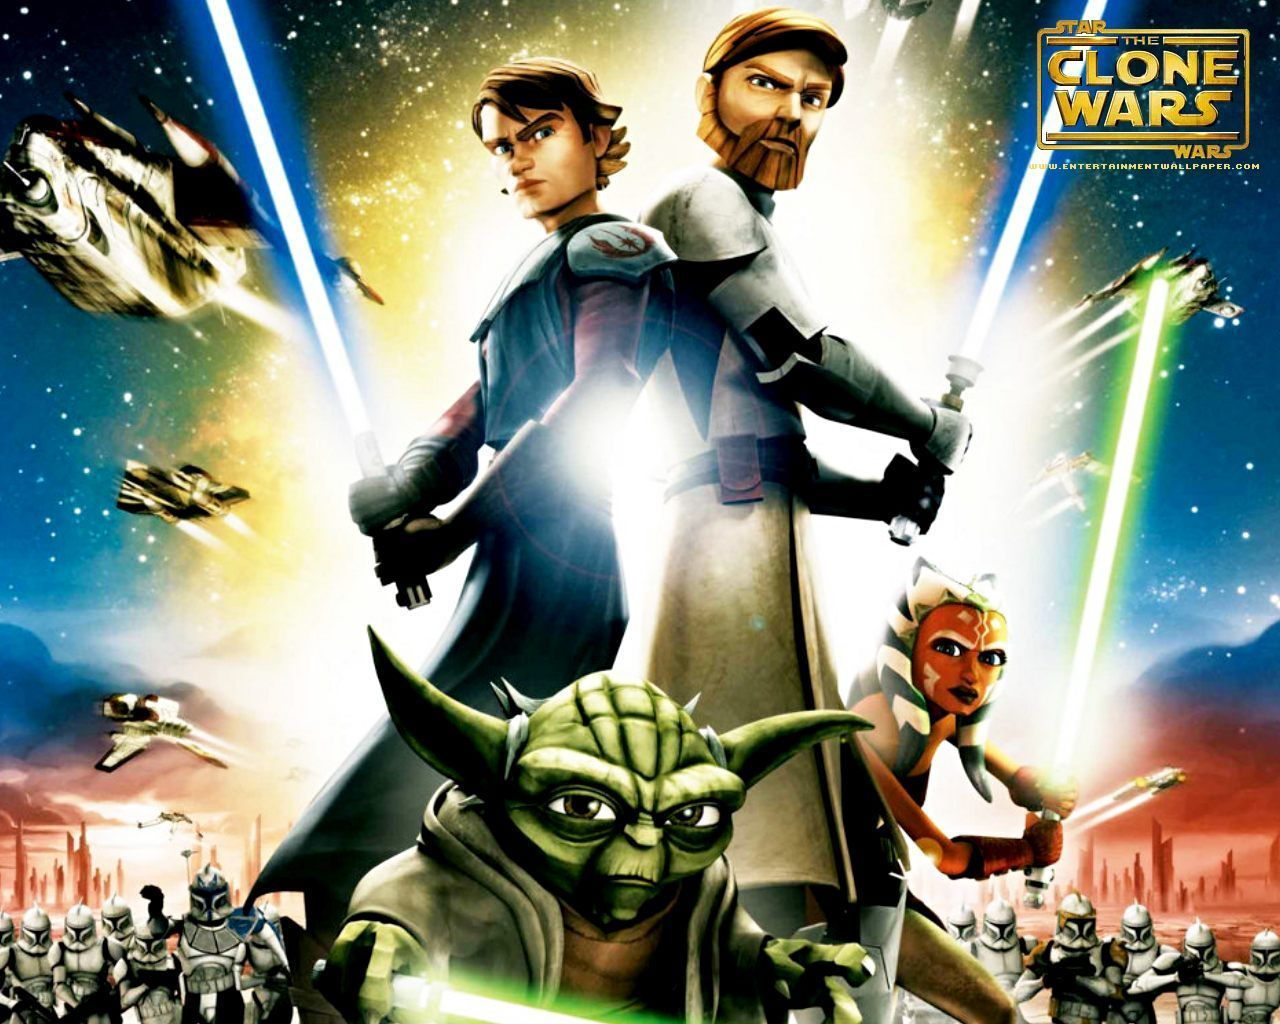 Clone Wars Star Wars The Clone Wars Tv 1280x1024 Wallpaper Teahub Io